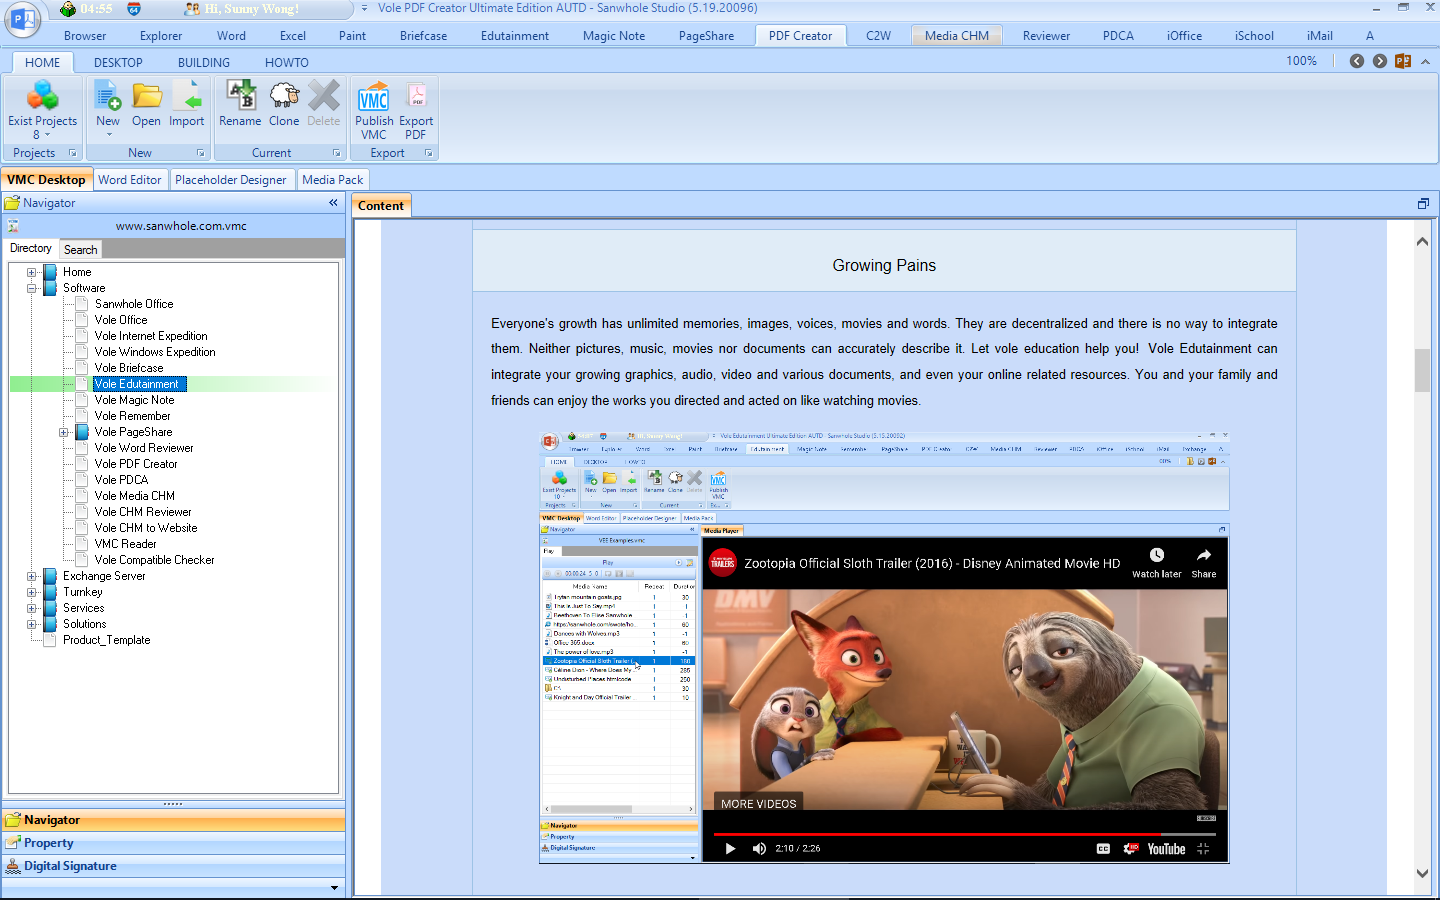 Vole PDF Creator, Business & Finance Software Screenshot